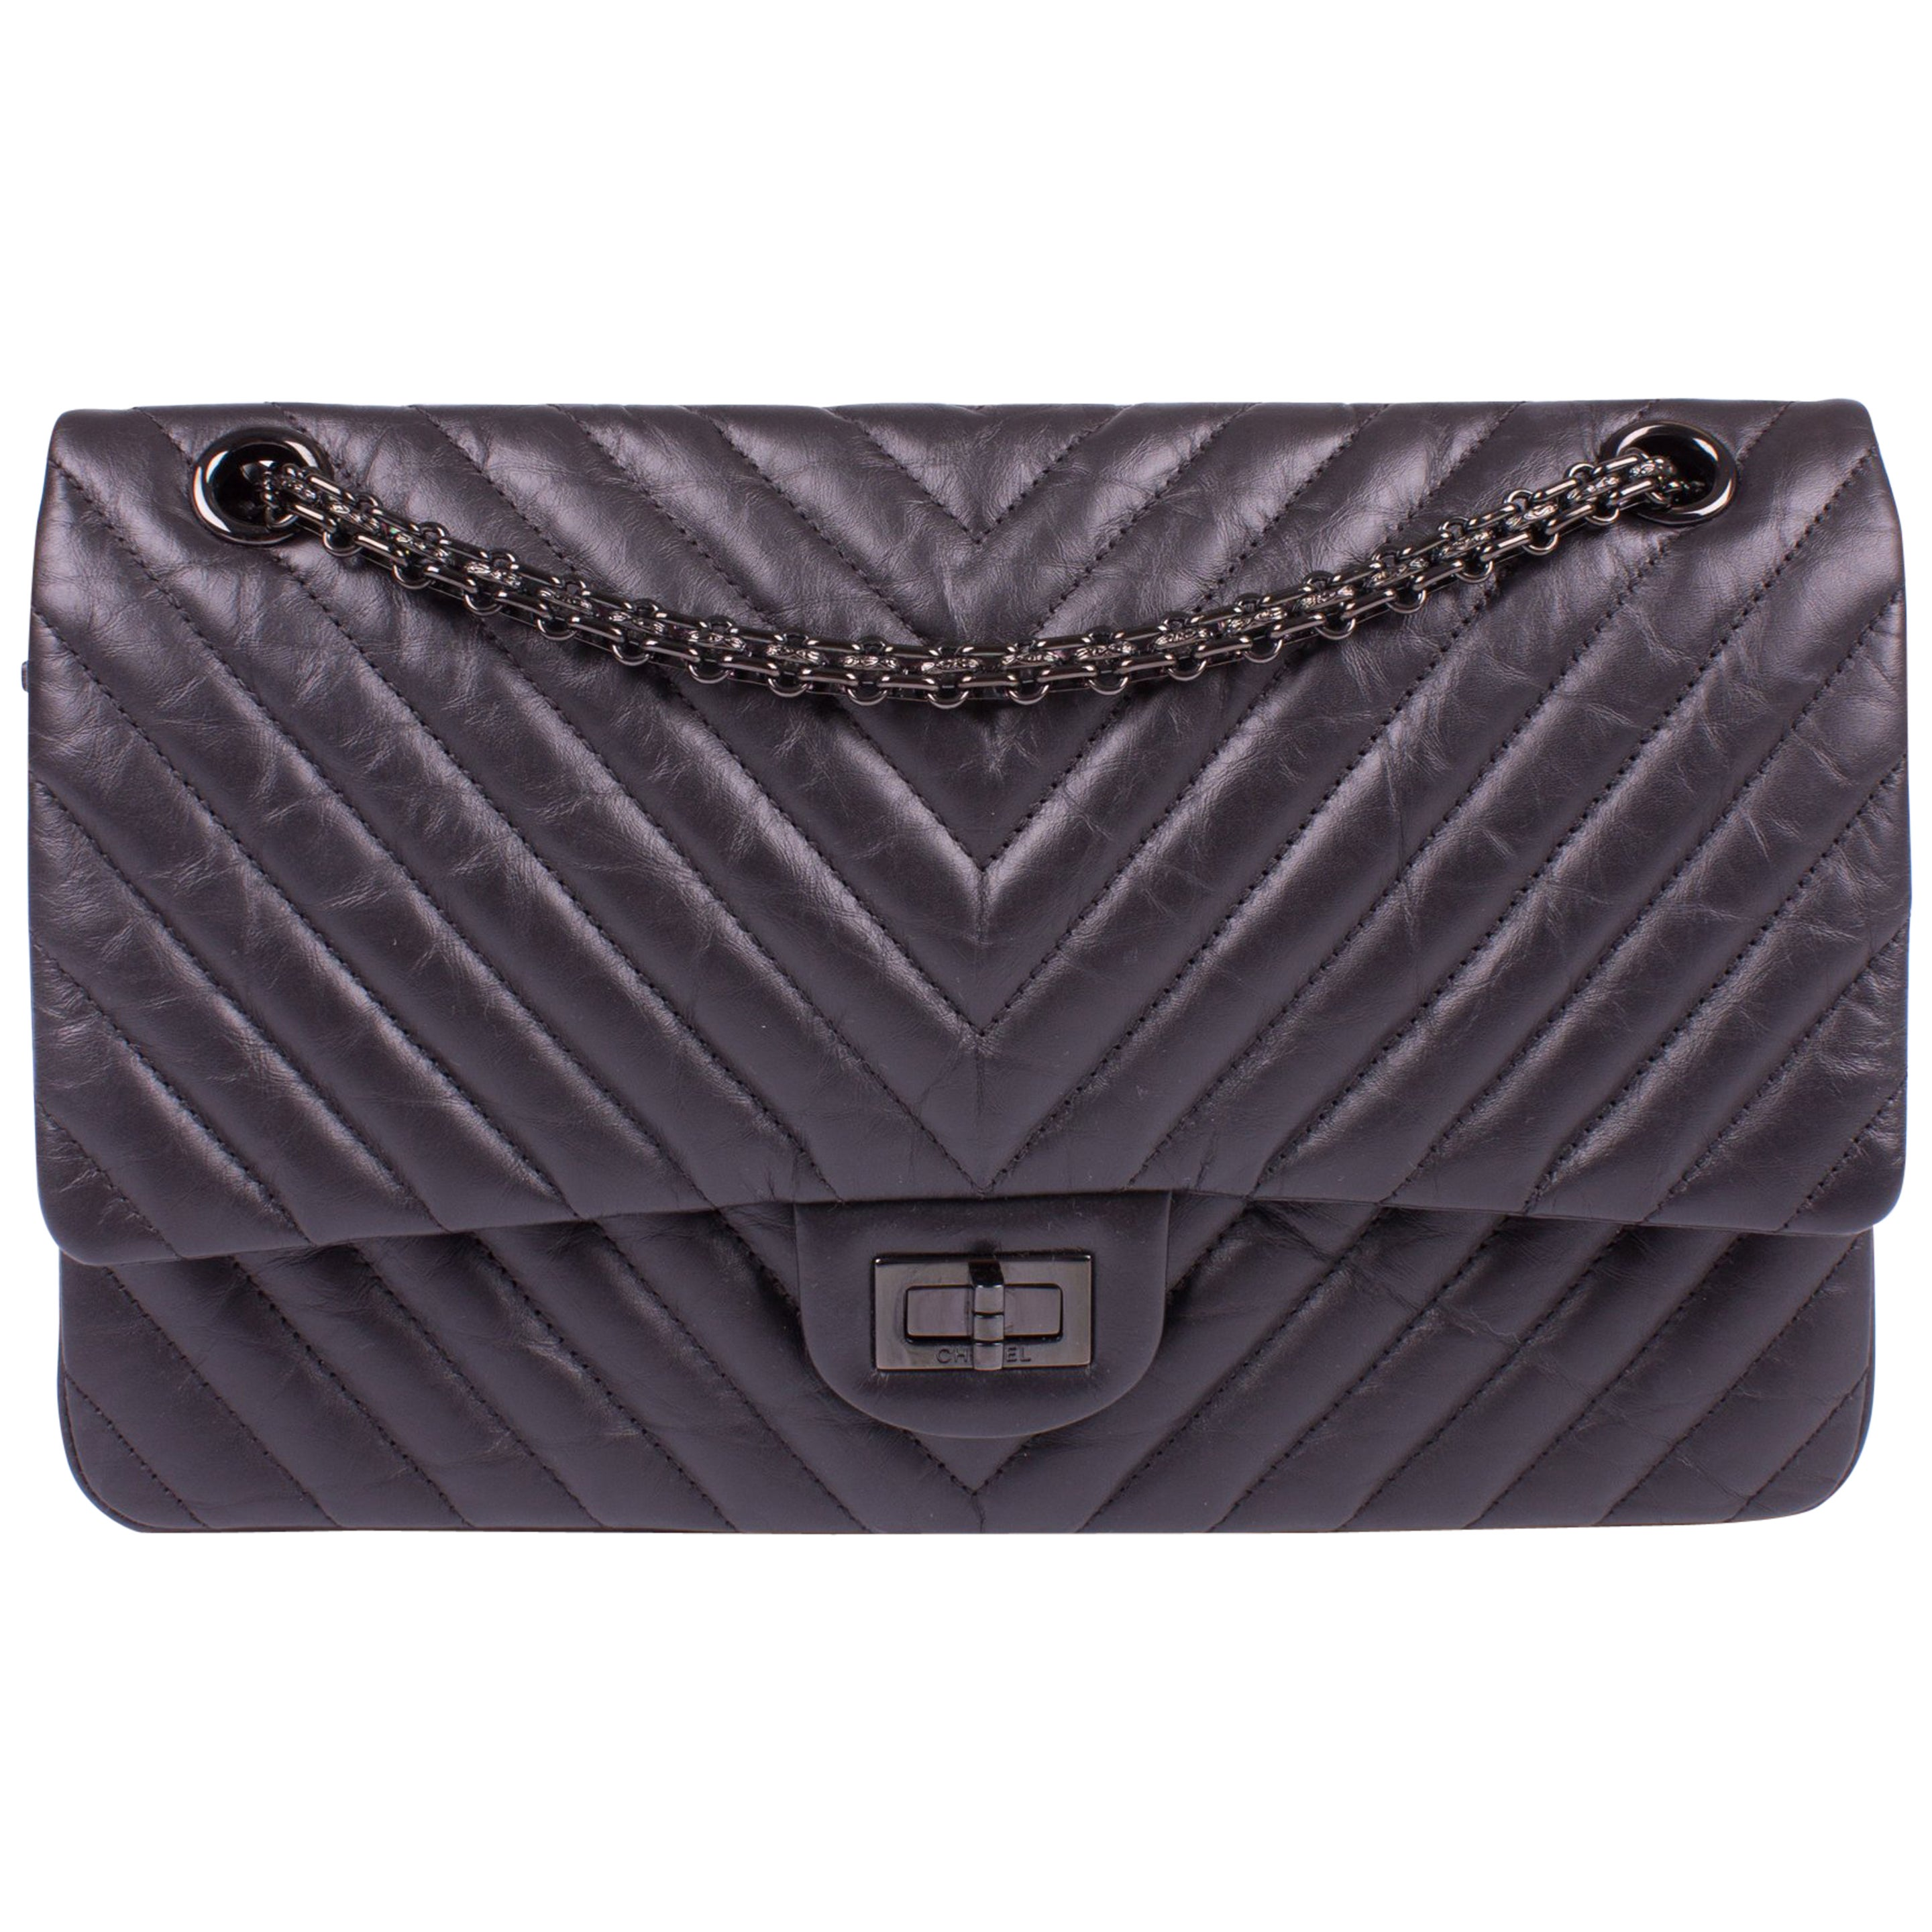 cfb003ba22604d Chanel 2.55 Reissue Chevron 224 Flap Bag - So Black at 1stdibs